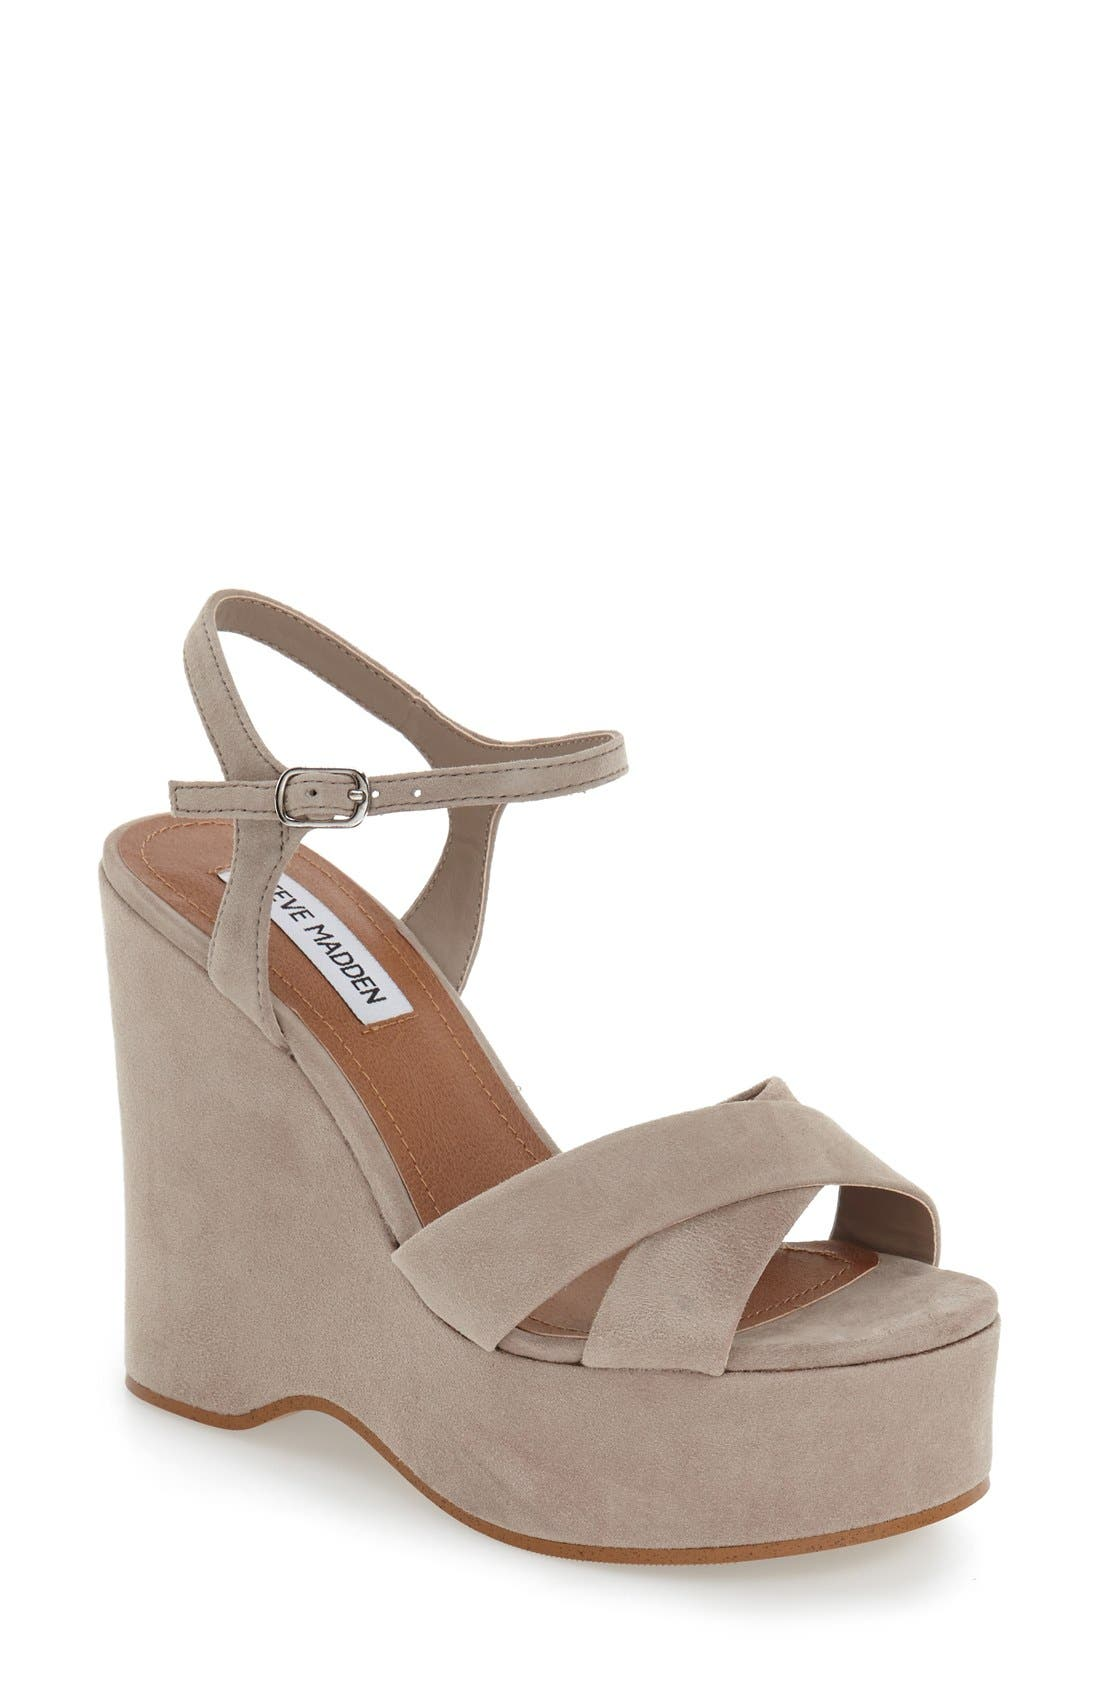 Alternate Image 1 Selected - Steve Madden 'Casper' Platform Wedge Sandal (Women)